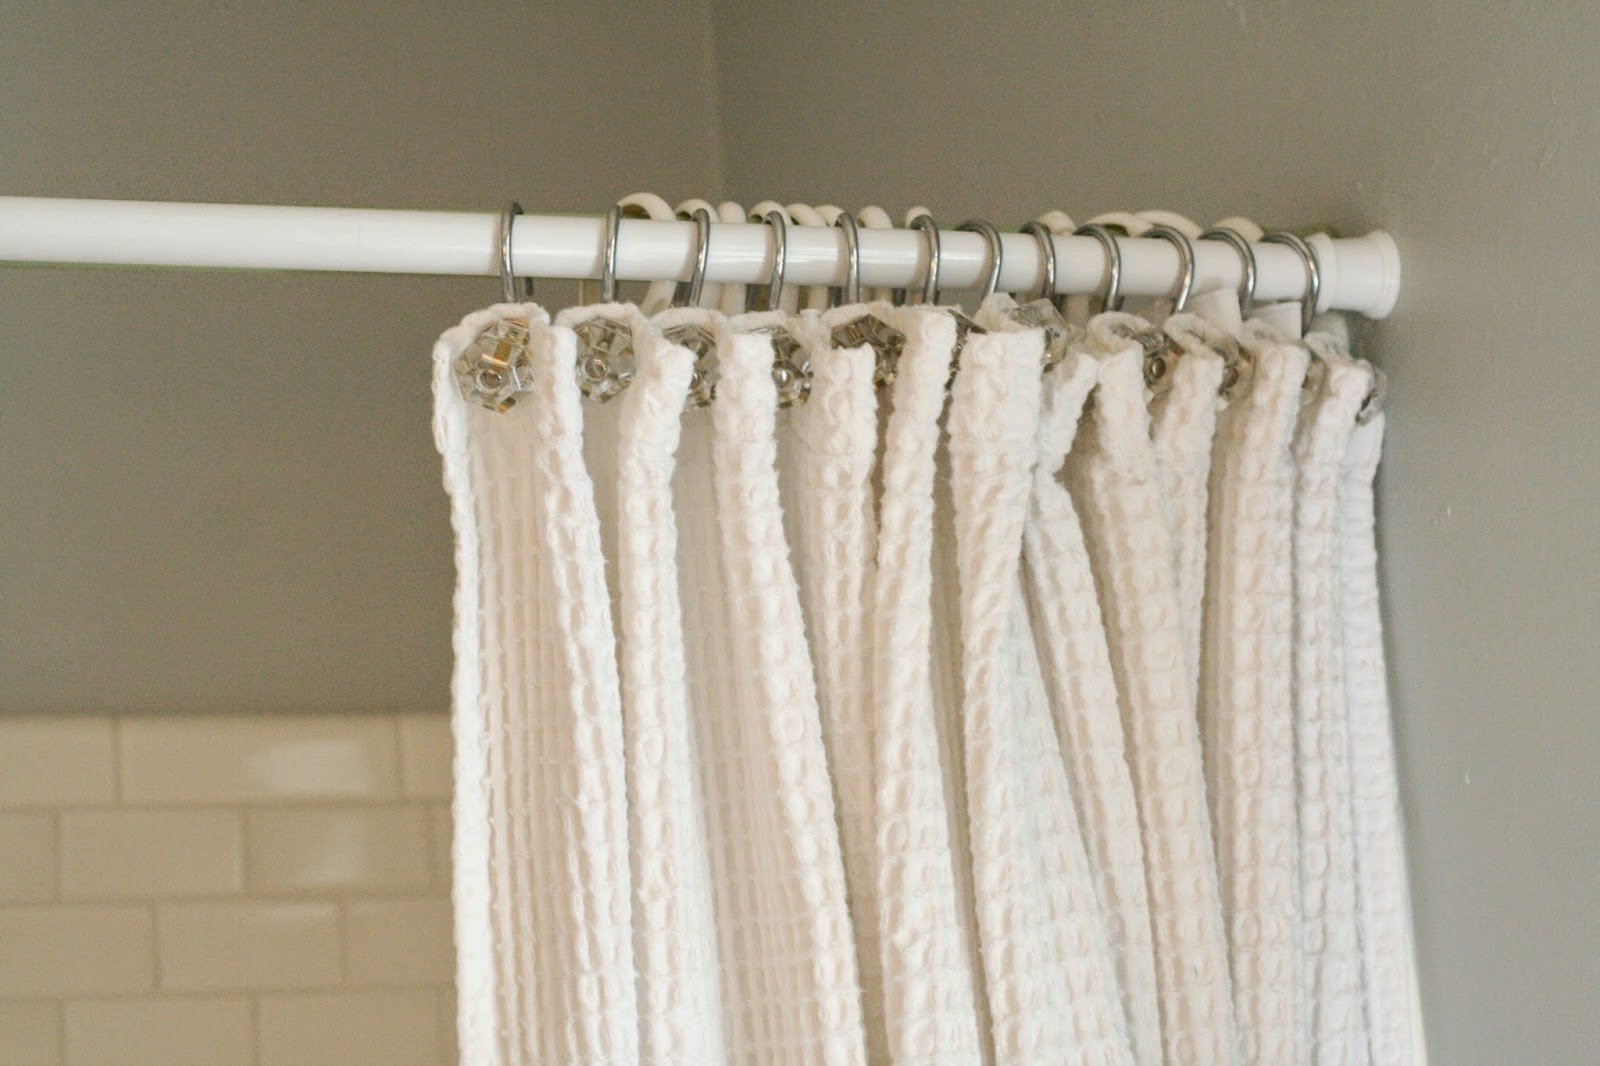 the cotton waffle weave shower curtain came from the